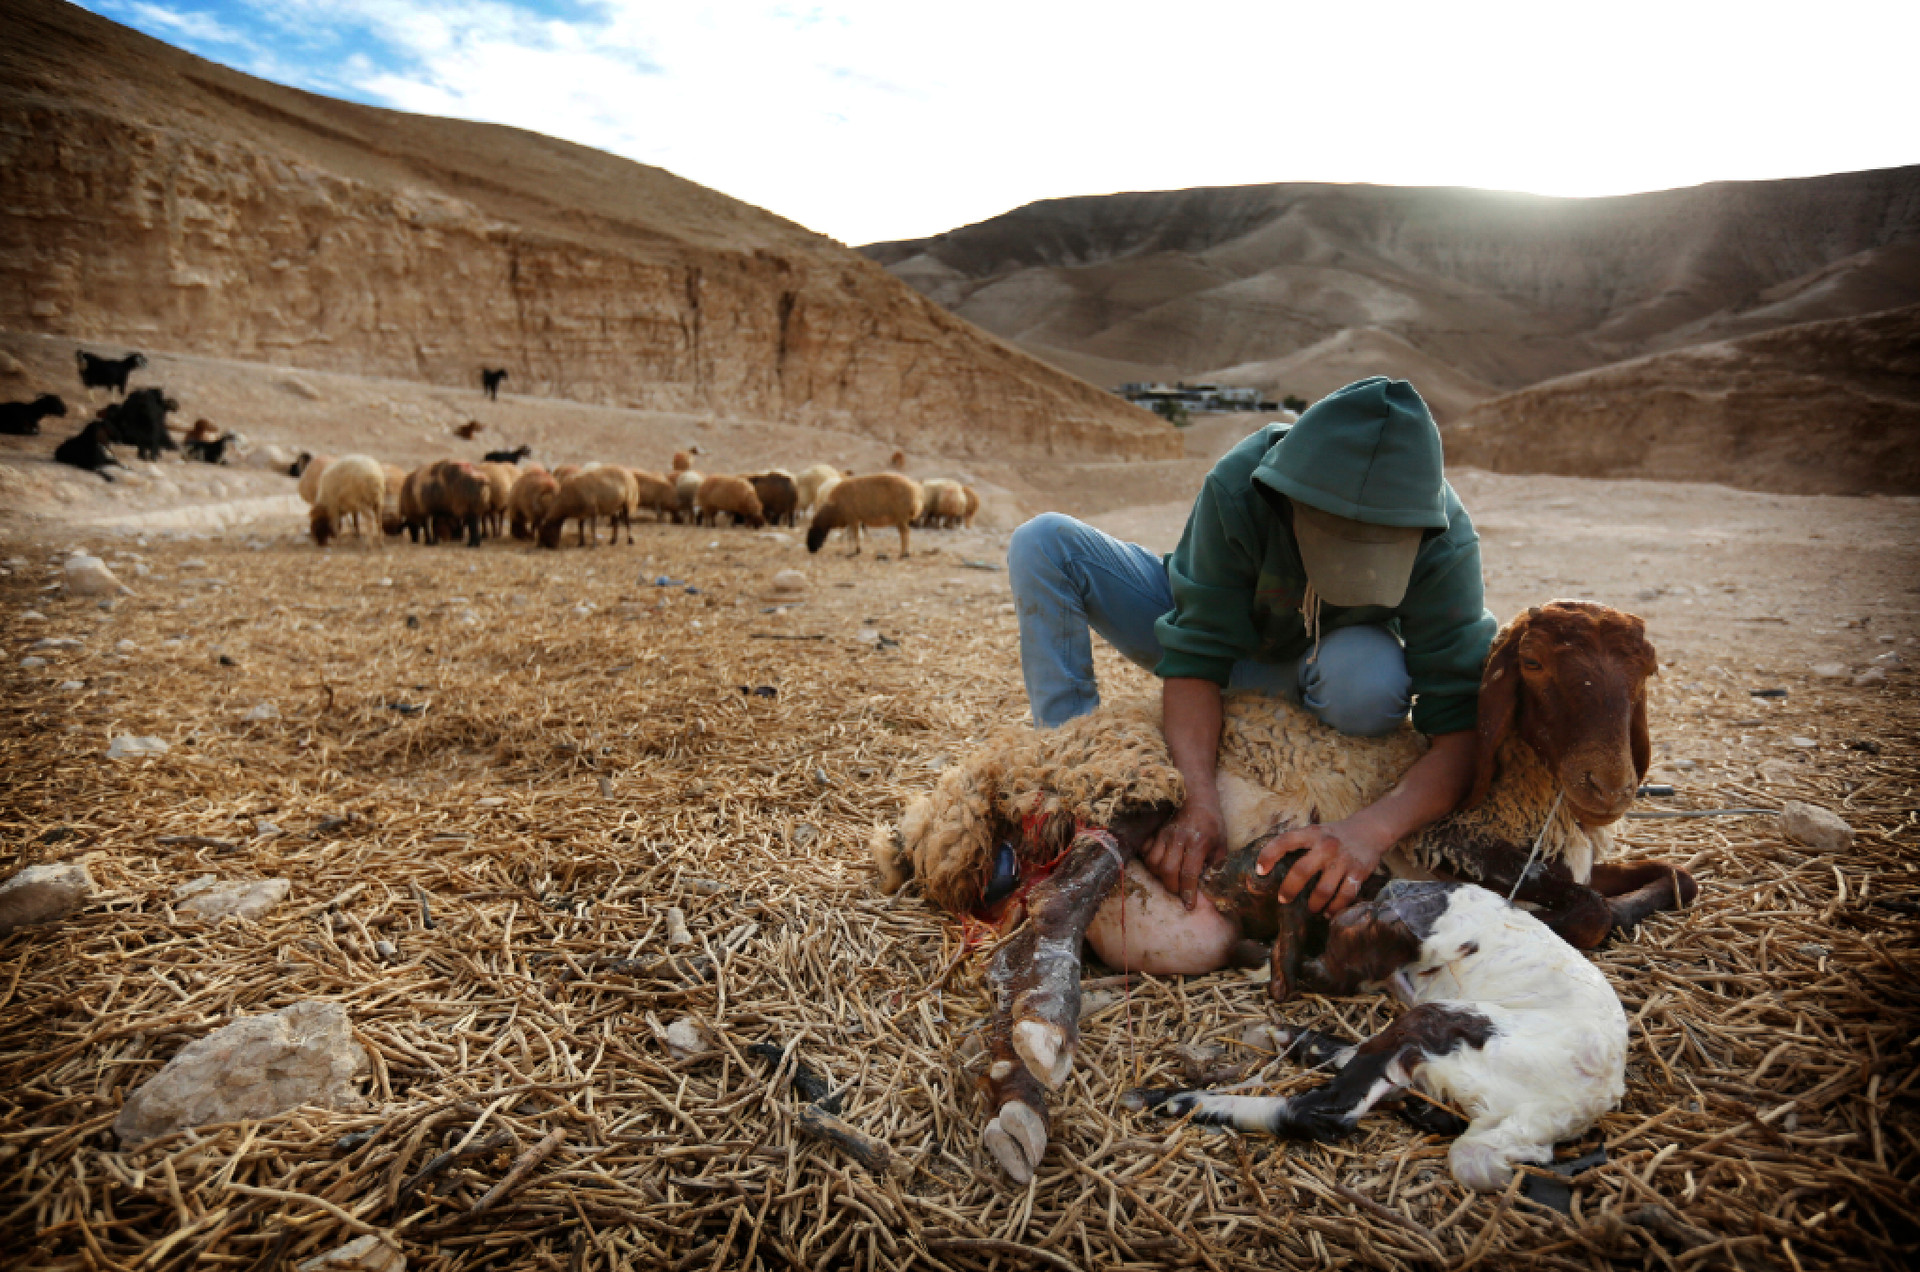 Kamal Ahmadin, 21, a Bedouin shepherd, helps deliver a baby goat. He lives in a community with nearly 80 people.